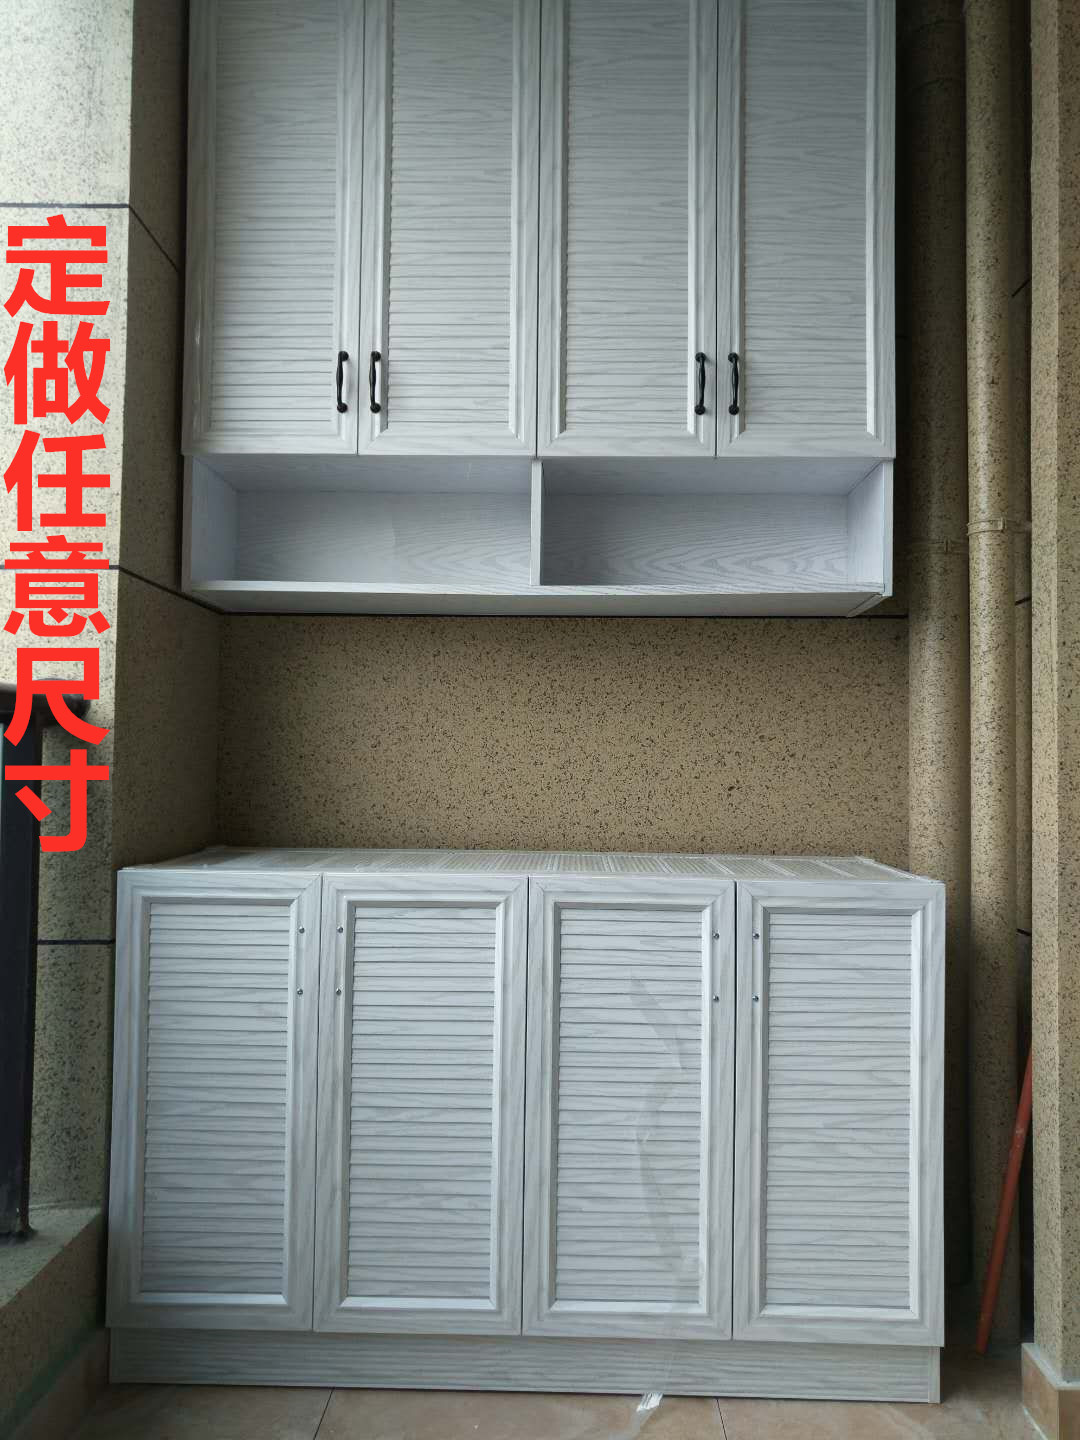 Usd 29 82 Custom Space Aluminum Balcony Locker Aluminum Alloy Hanging Cabinet Shoe Cabinet Bathroom Cabinet Kitchen Locker Locker Locker Close Cabinet Wholesale From China Online Shopping Buy Asian Products Online